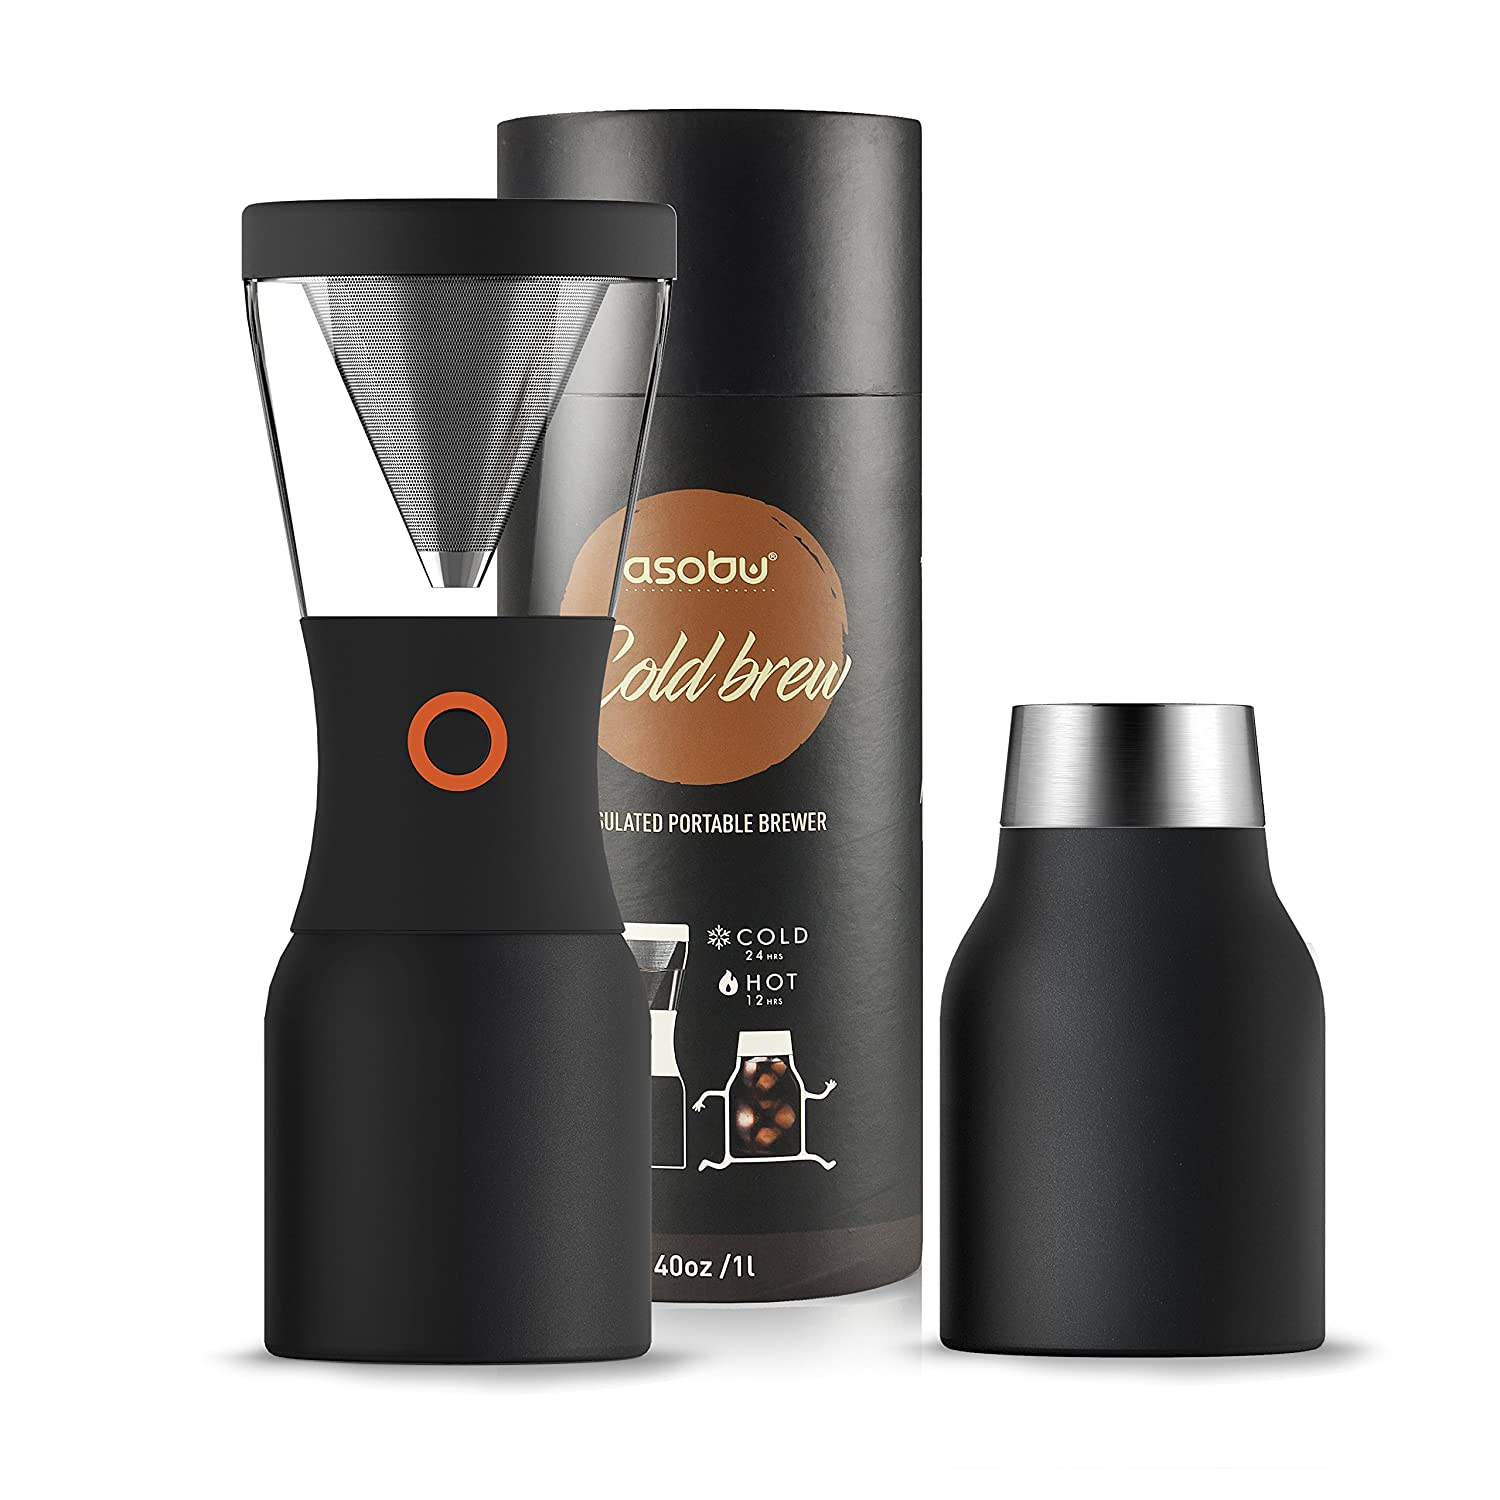 4. Asobu Coldbrew Portable Coffee Maker